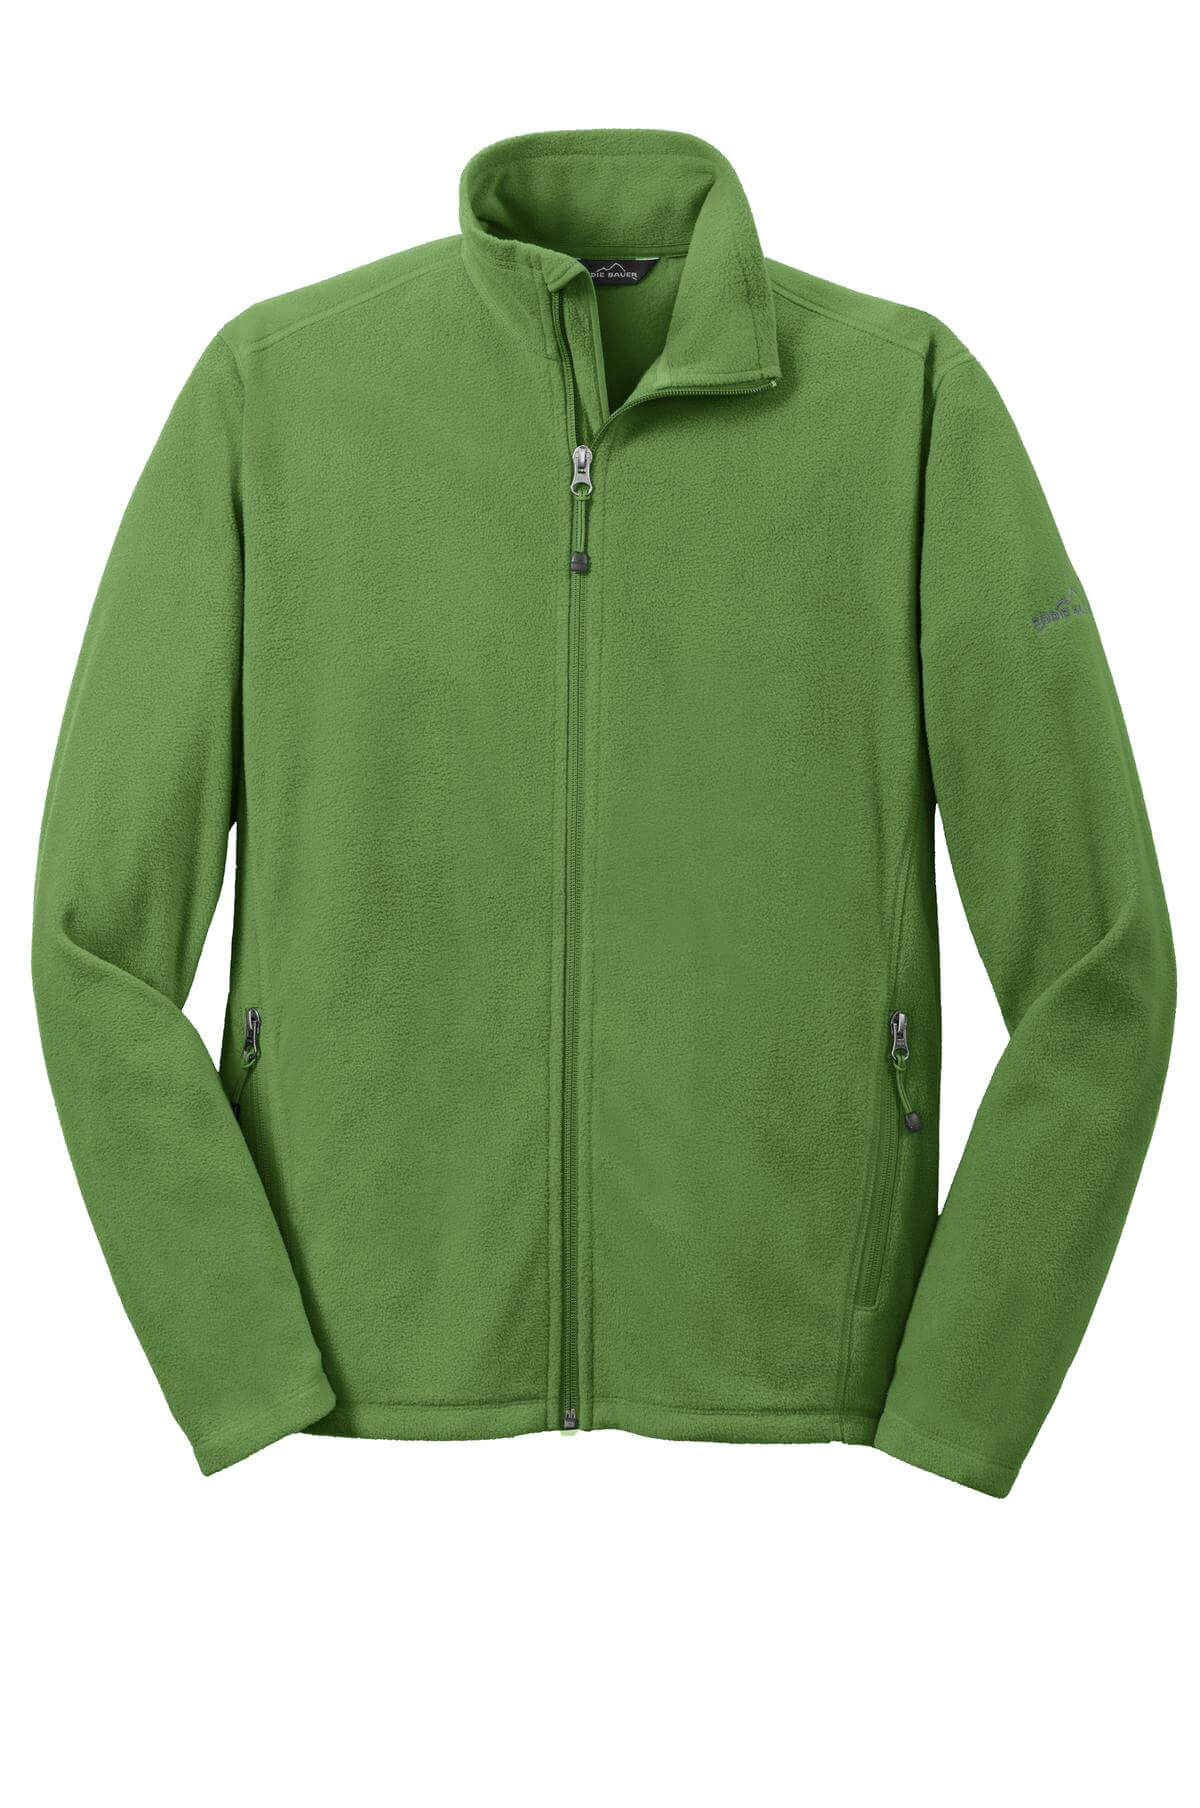 Eddie Bauer Men's Full-Zip Microfleece Jacket